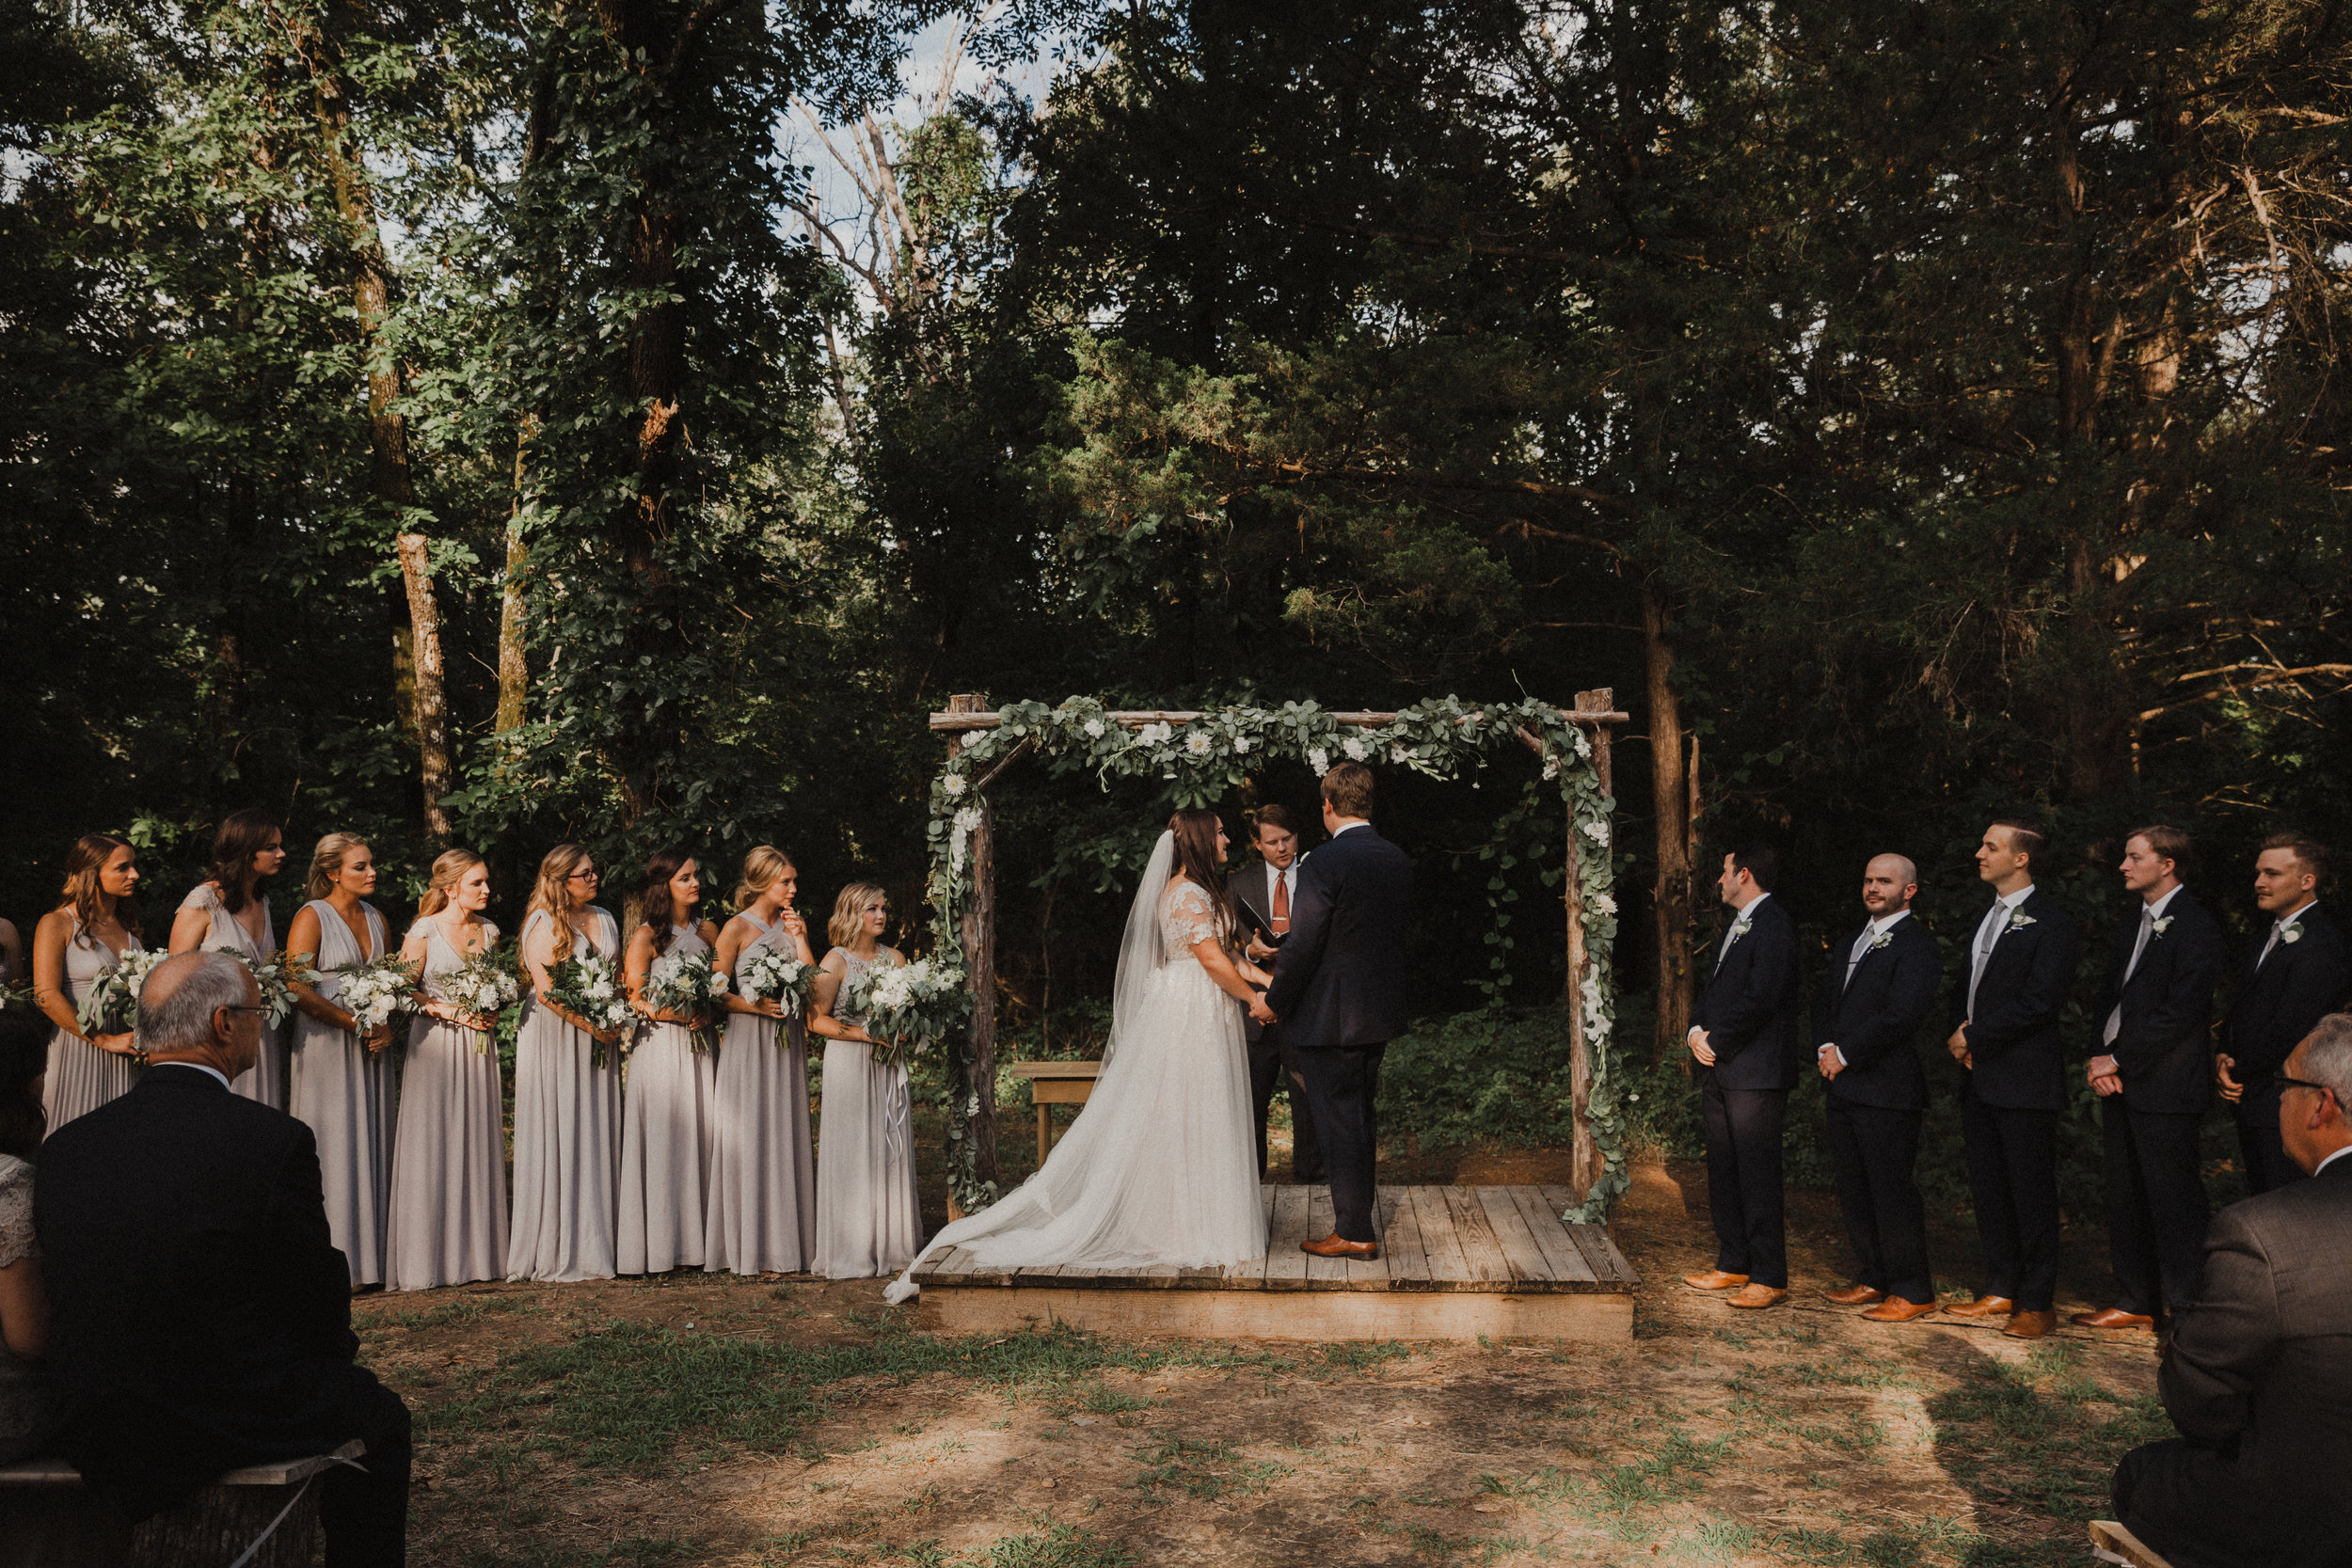 2017 giveaway winner! - matthew & melissa's arkansas wedding